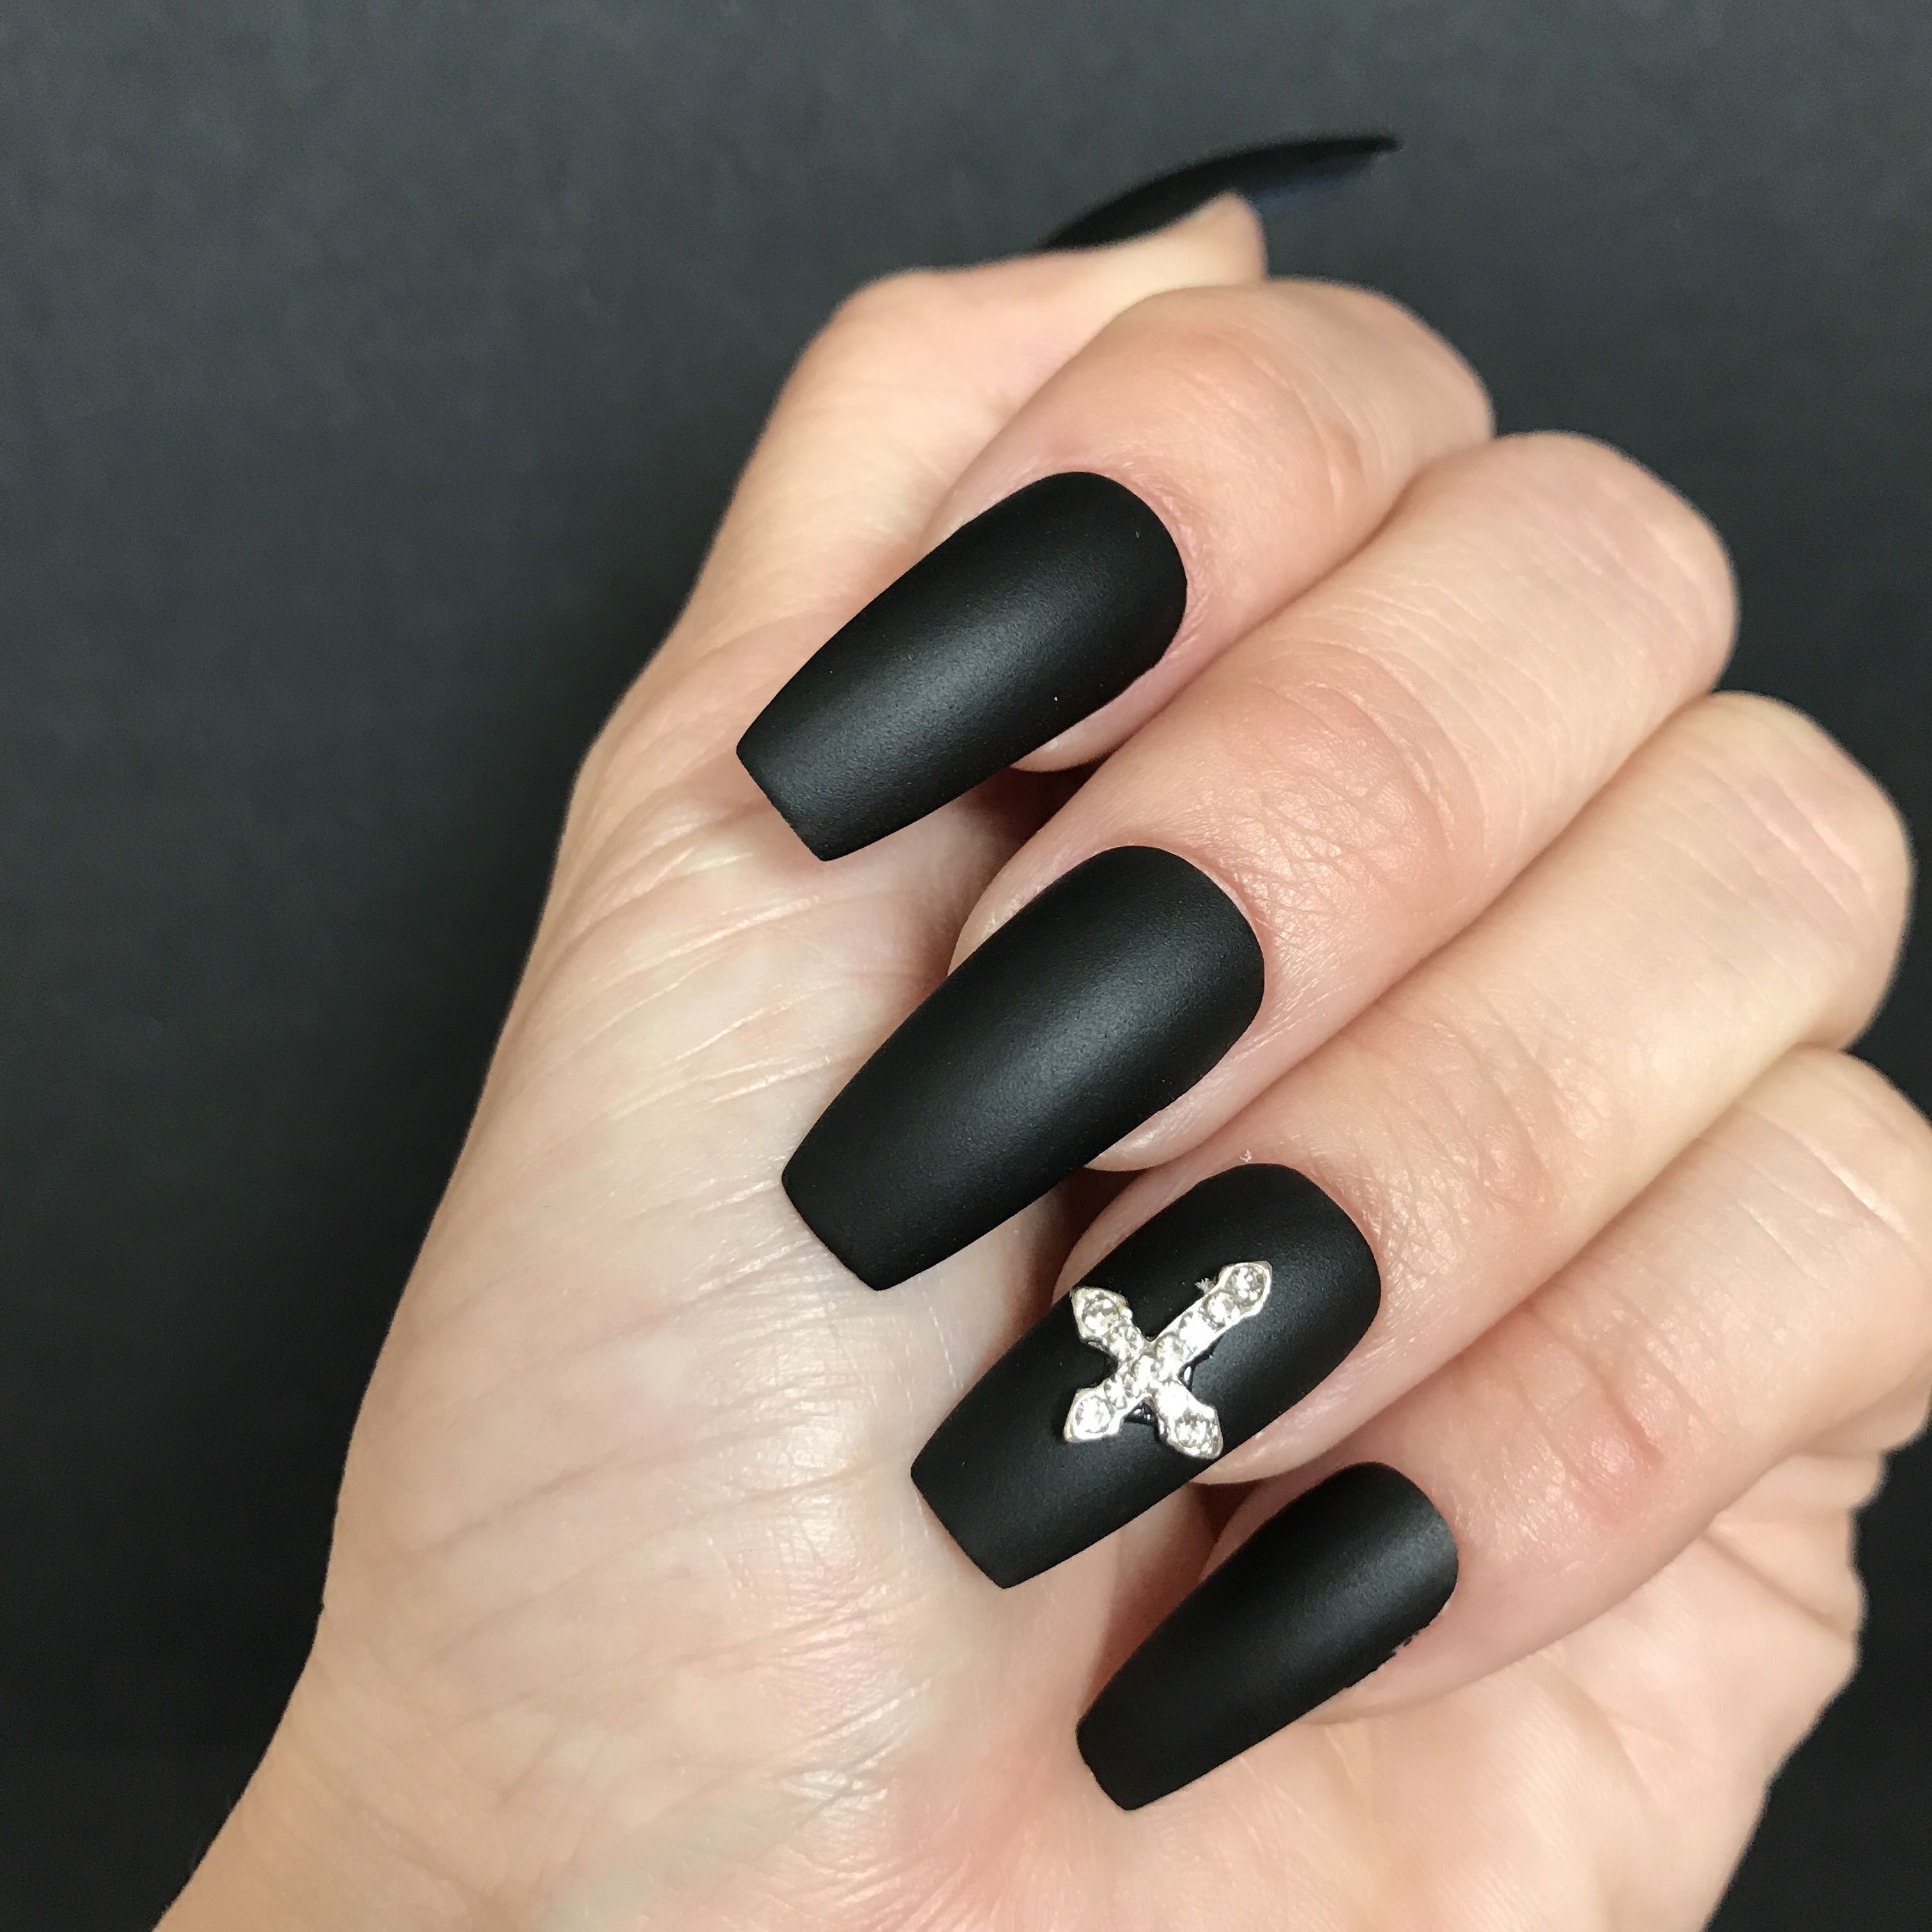 Halloween Nails Subtle Coffin Shape Matte Black And A Glossy Accent Nail With A Spider We Cute Halloween Nails Black Halloween Nails Halloween Acrylic Nails